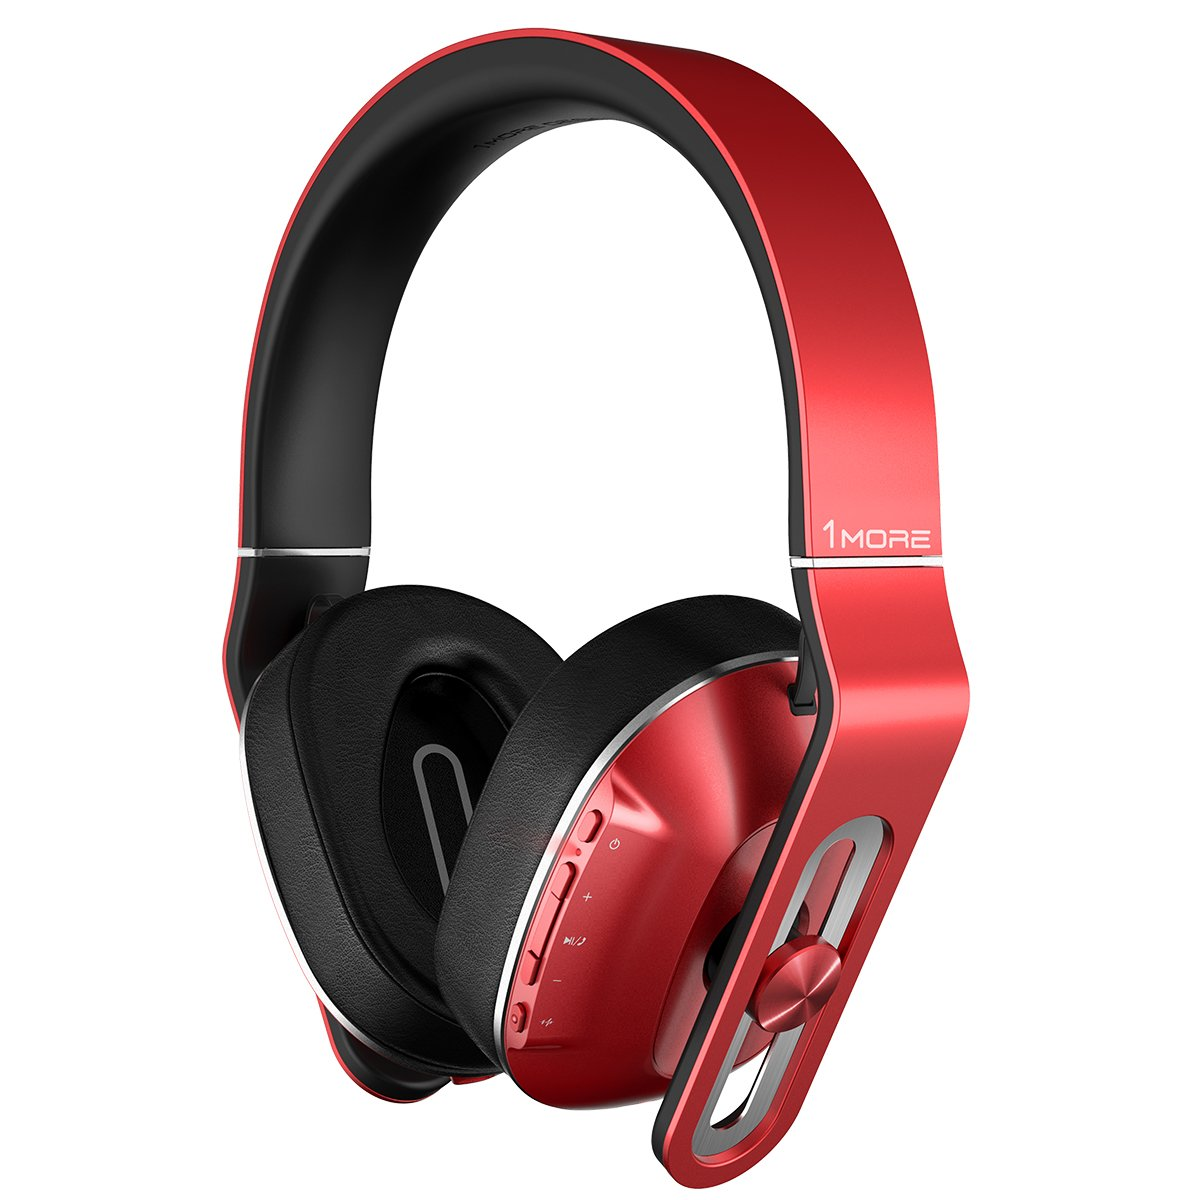 1MORE MK802-RD Bluetooth Wireless Over-Ear Headphones with Apple iOS & Android Compatible Microphone & Remote Red